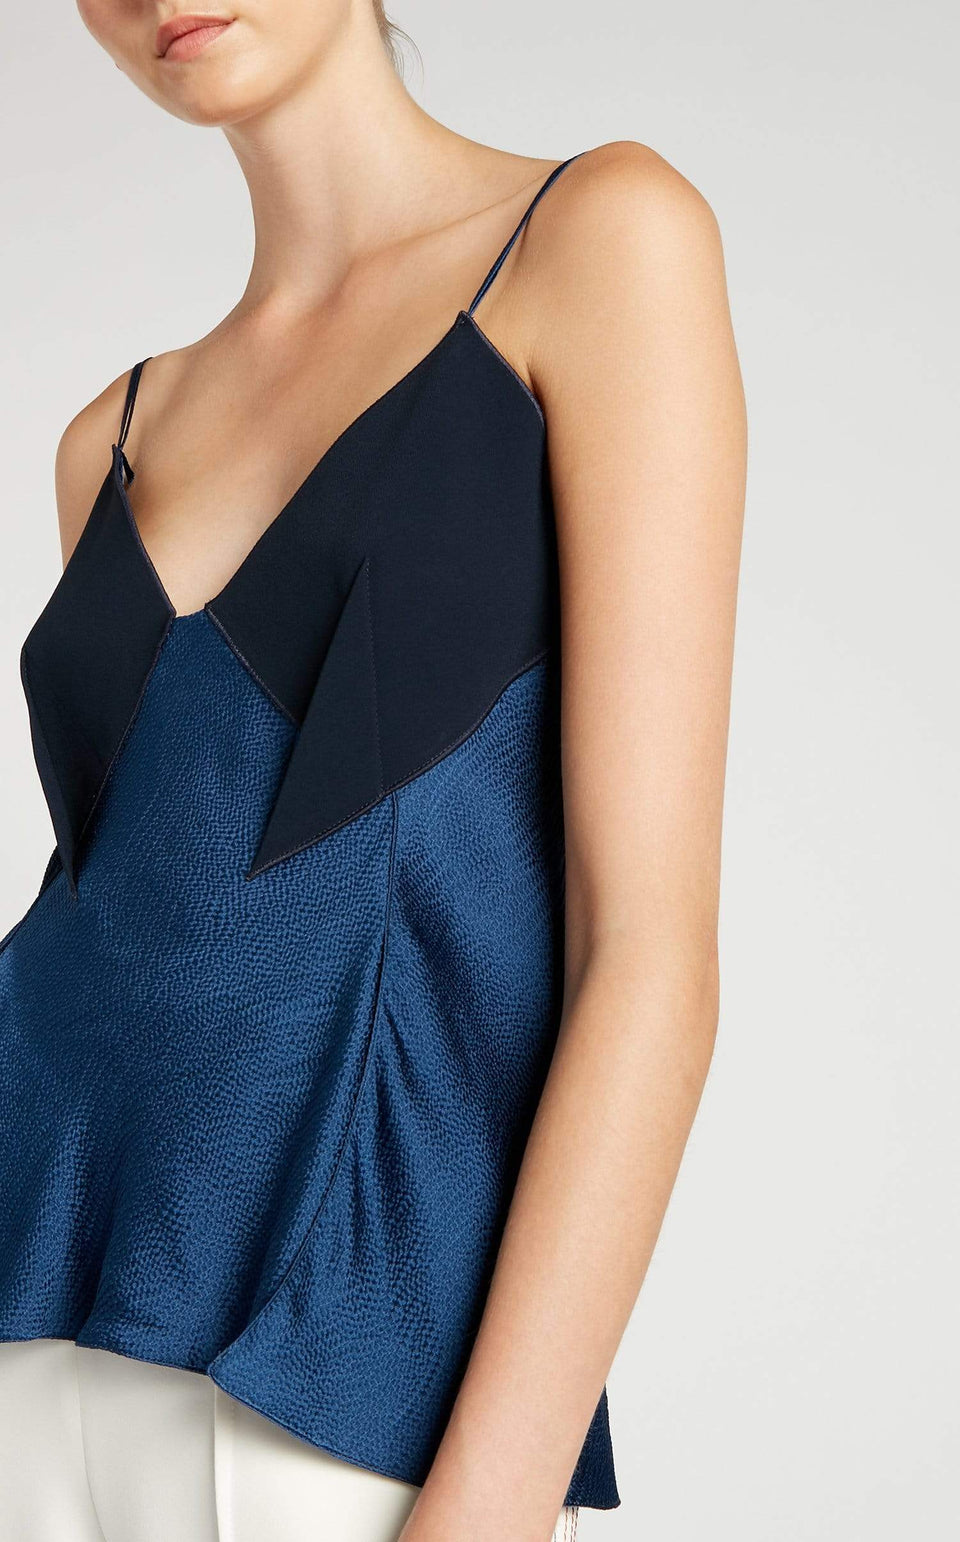 Fritz Top In Ultramarine/Navy from Roland Mouret